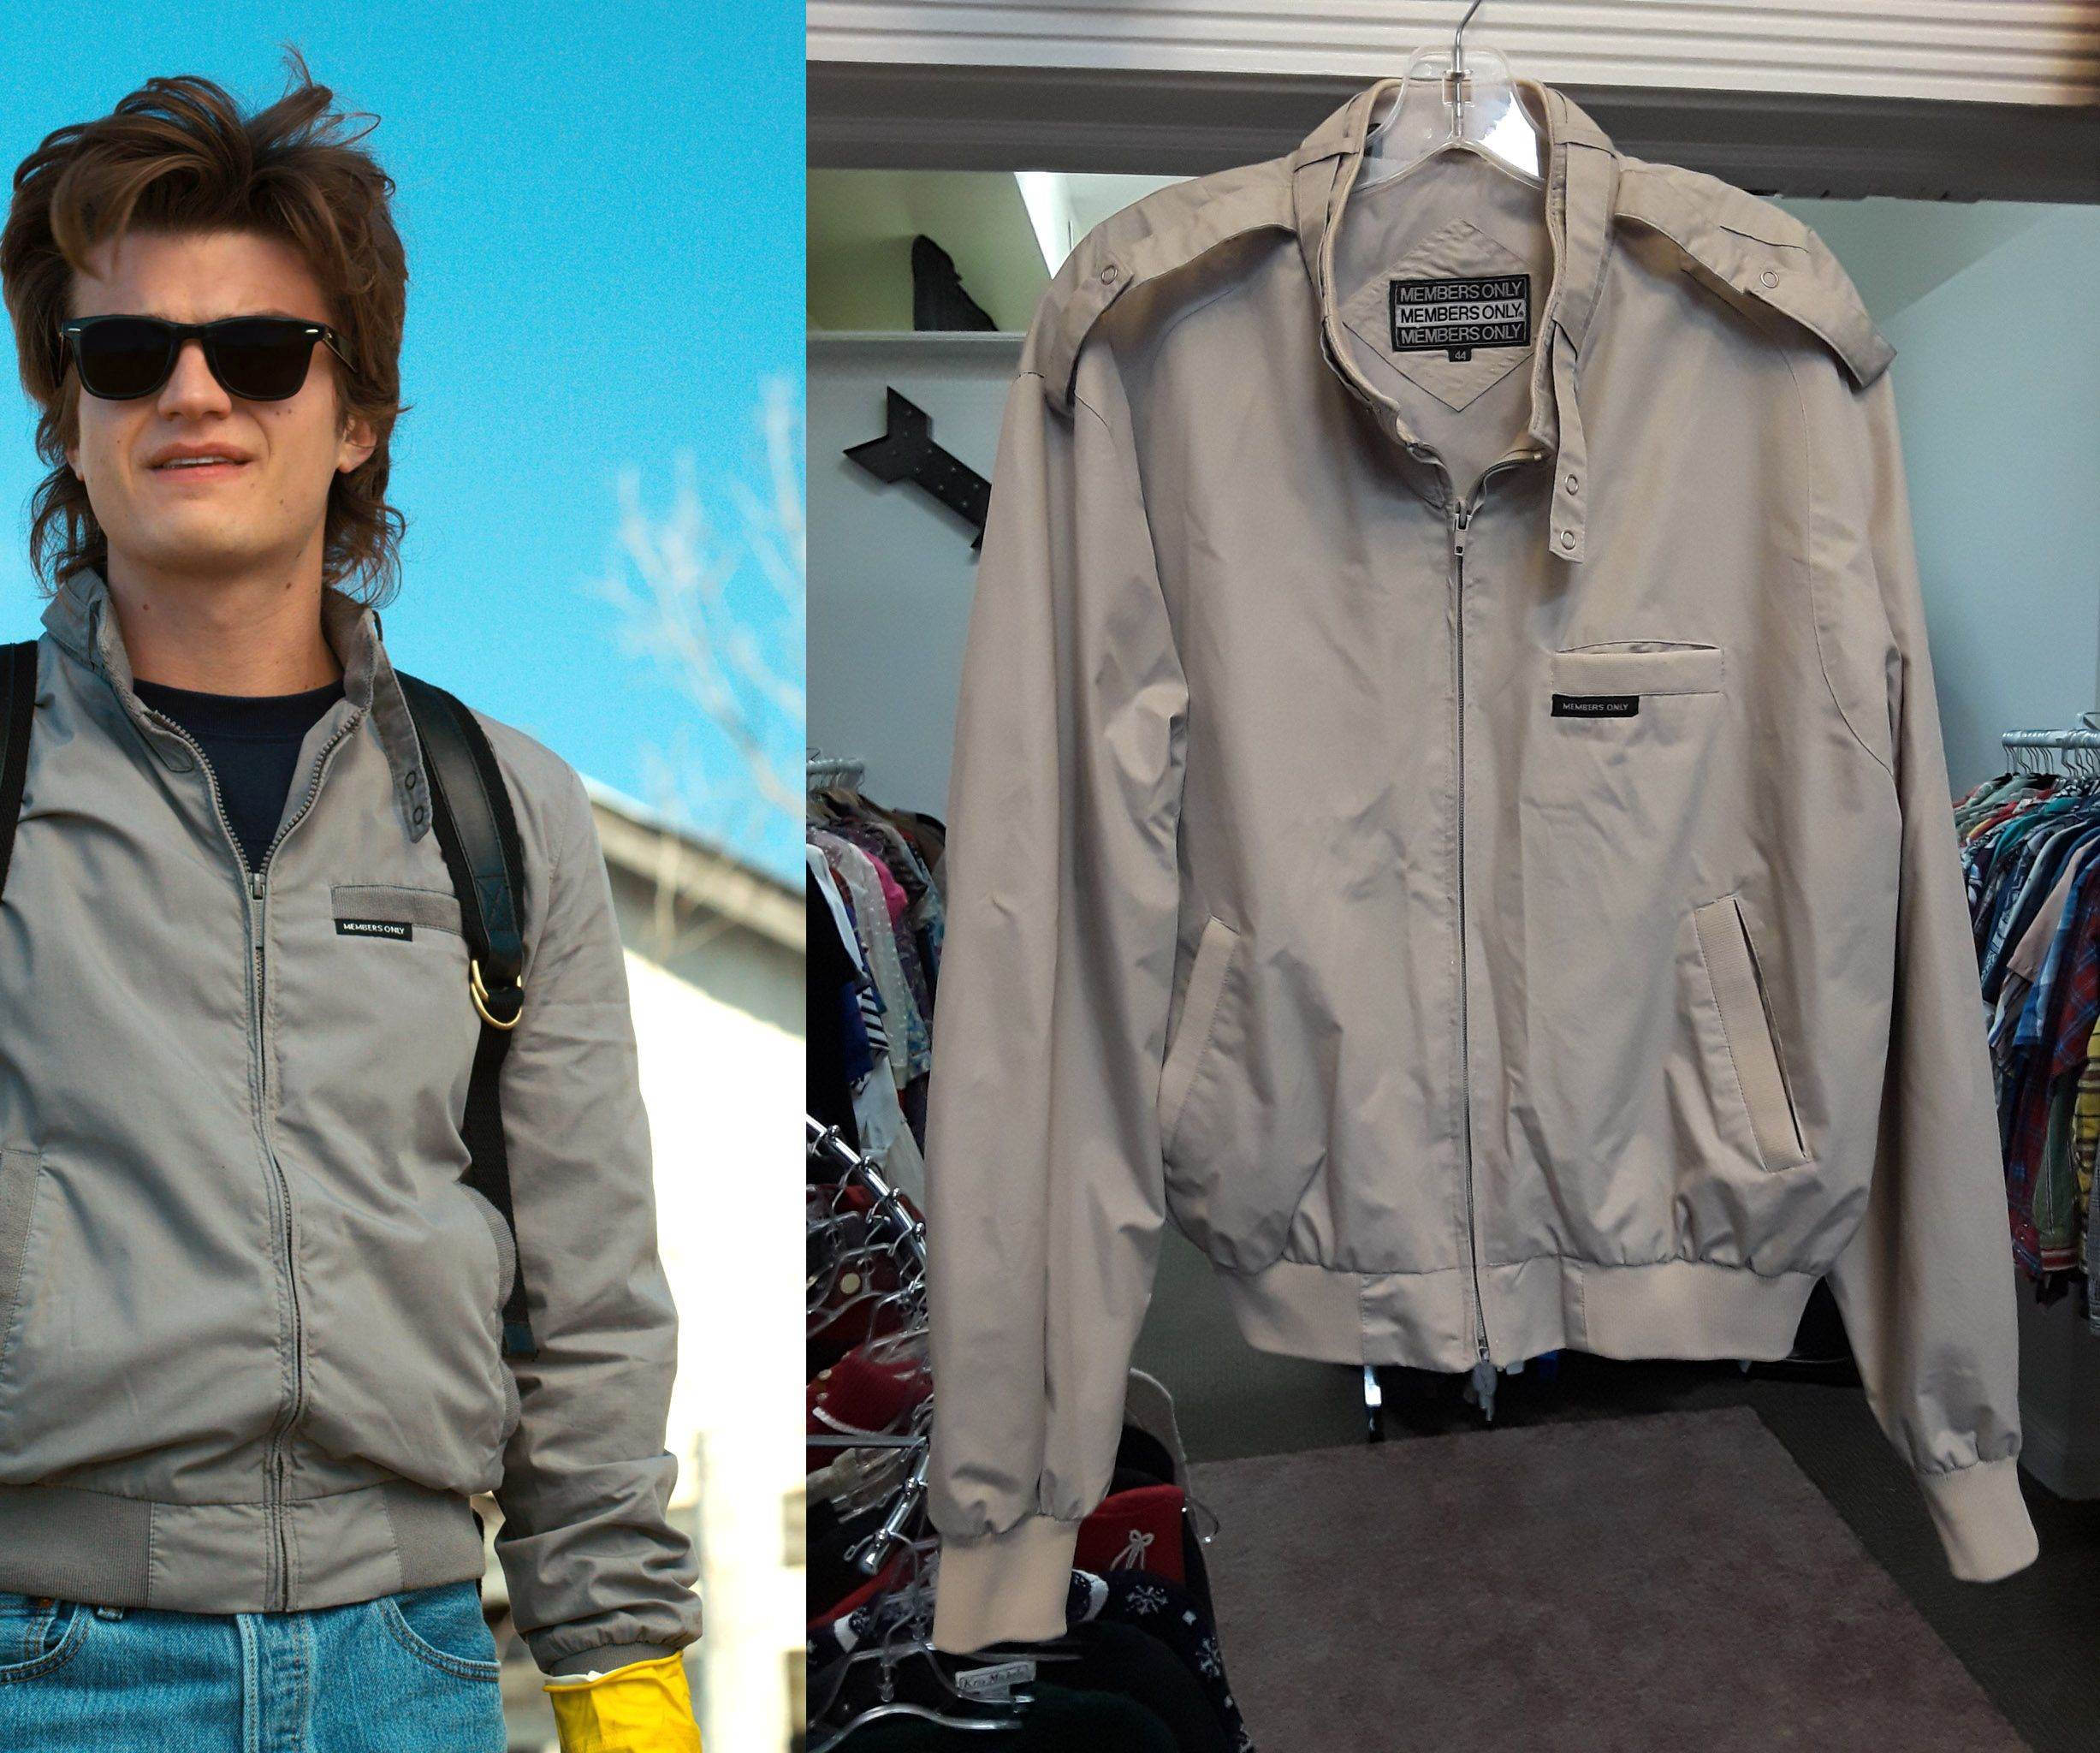 sick members only jacket. similar to the one seen in Stranger Things season  2